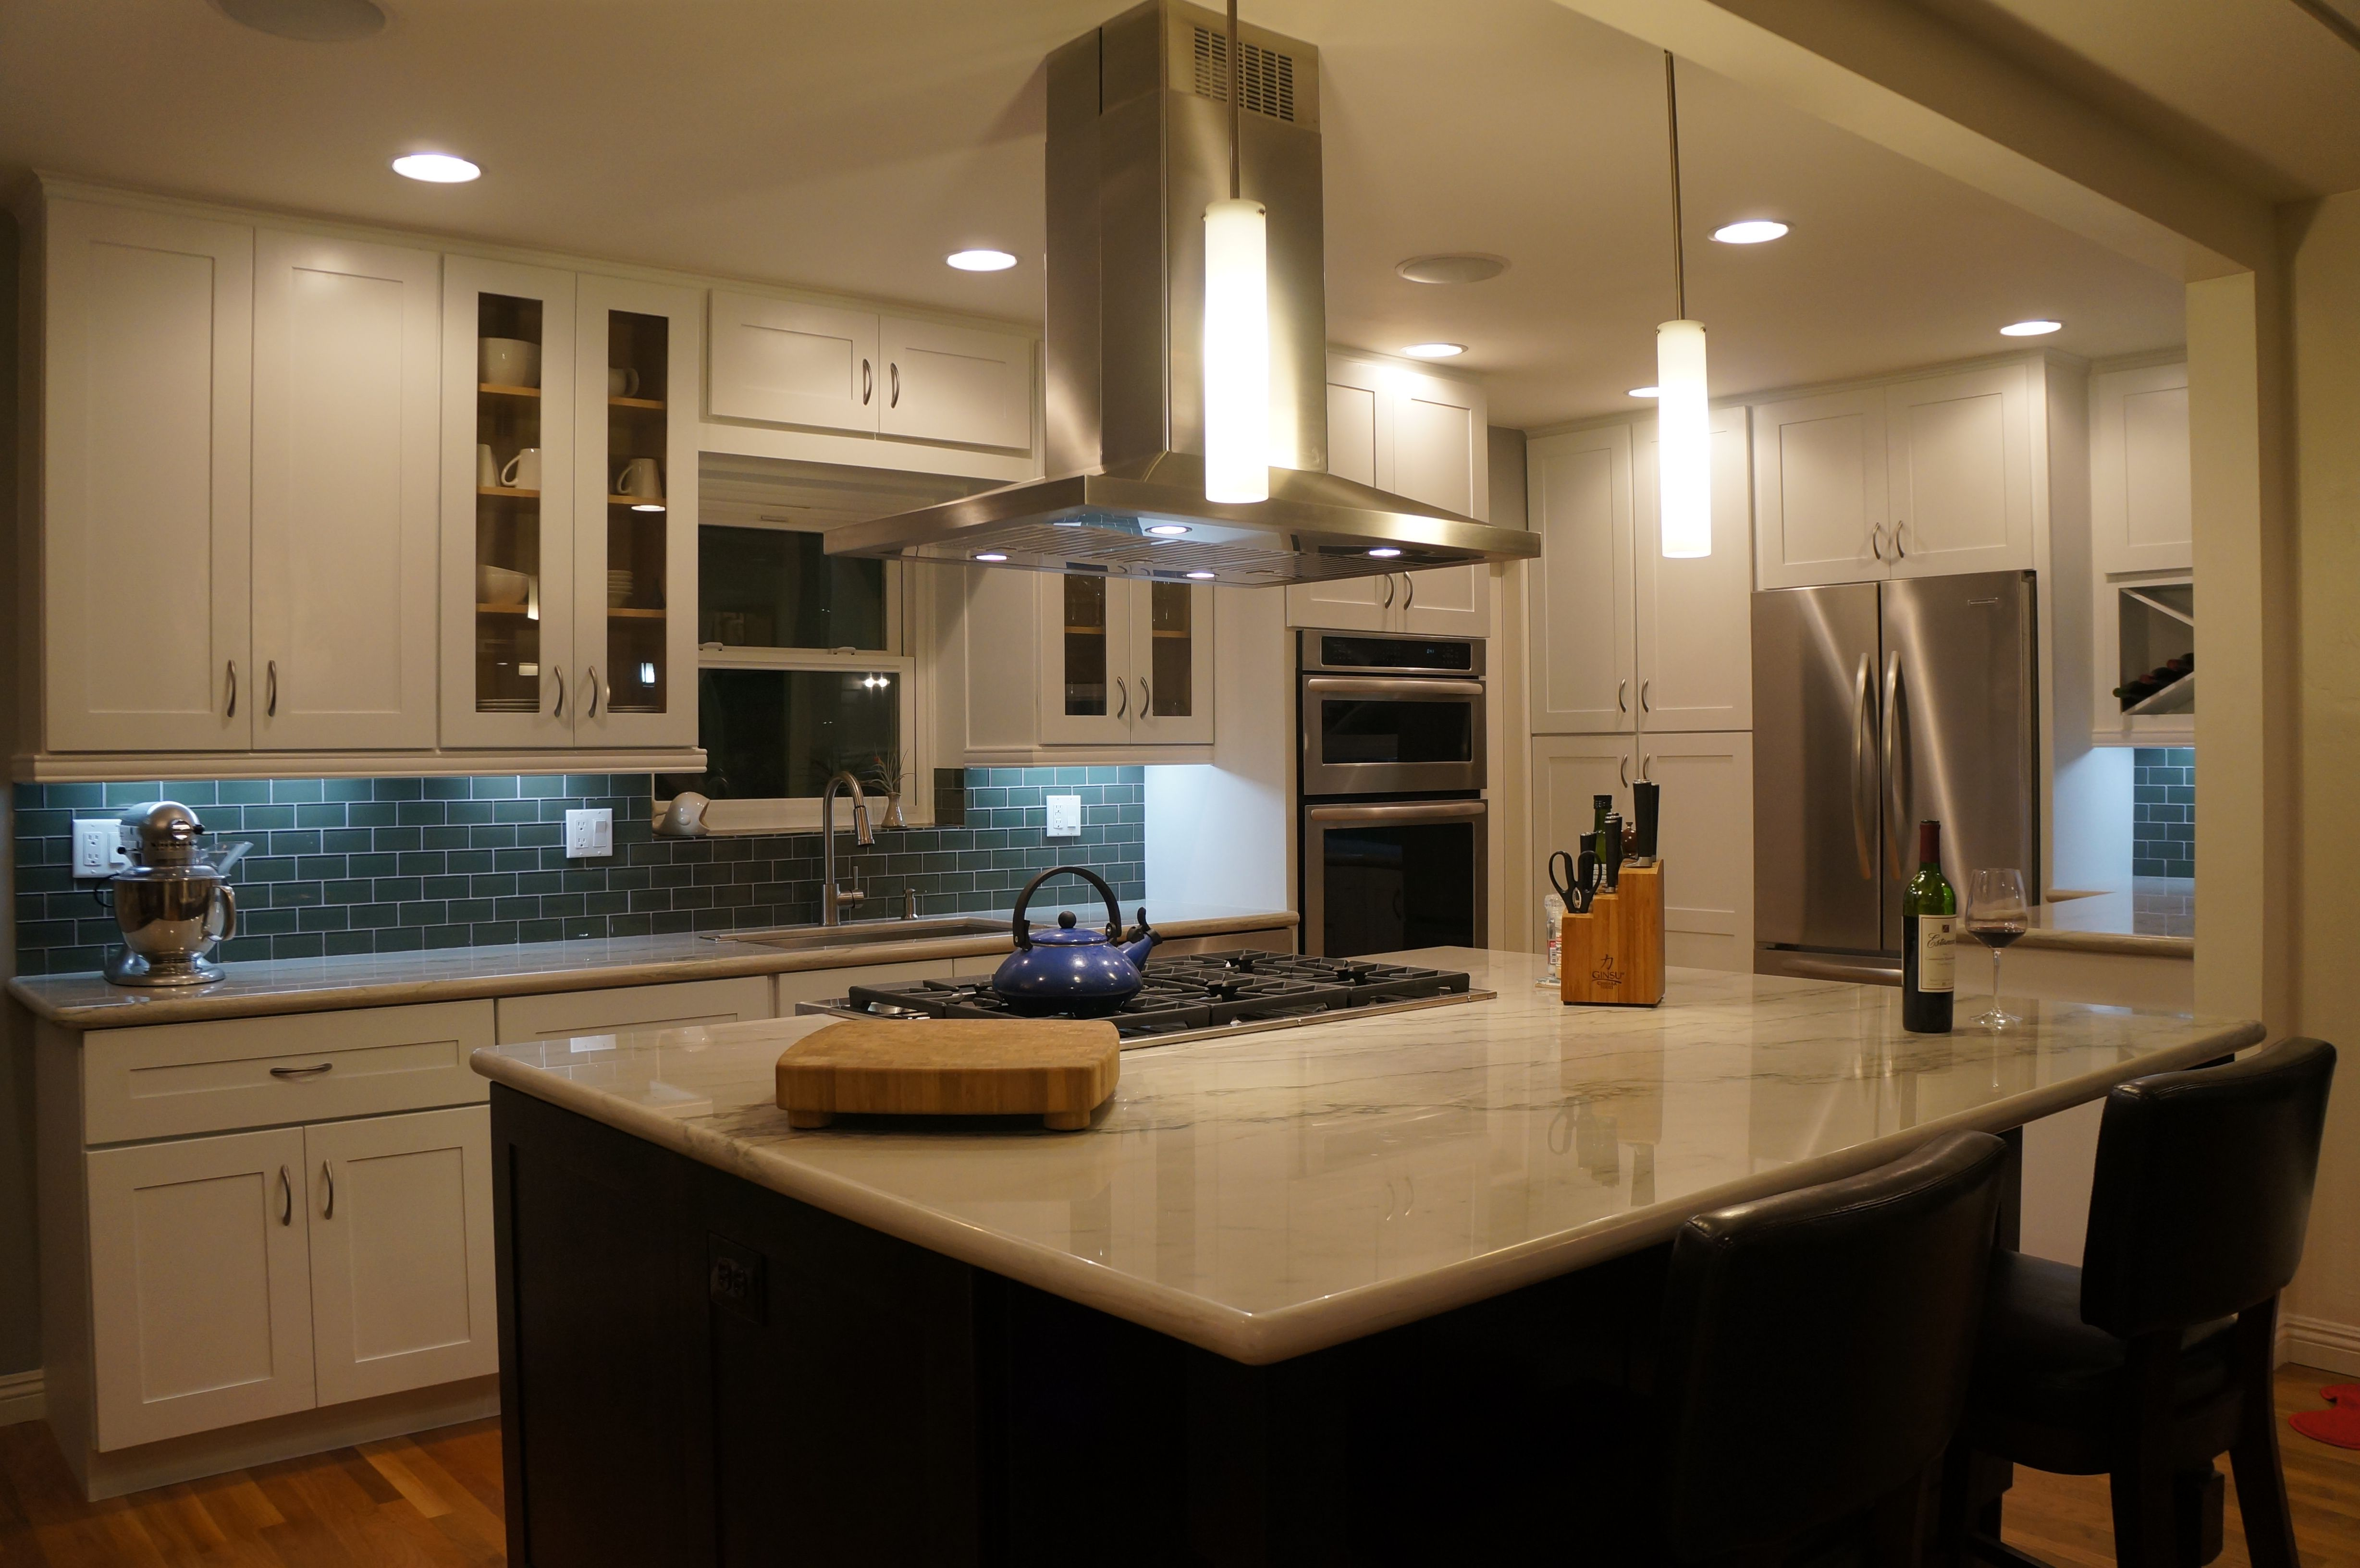 White cabinets espresso island quartzite counter pewter glass